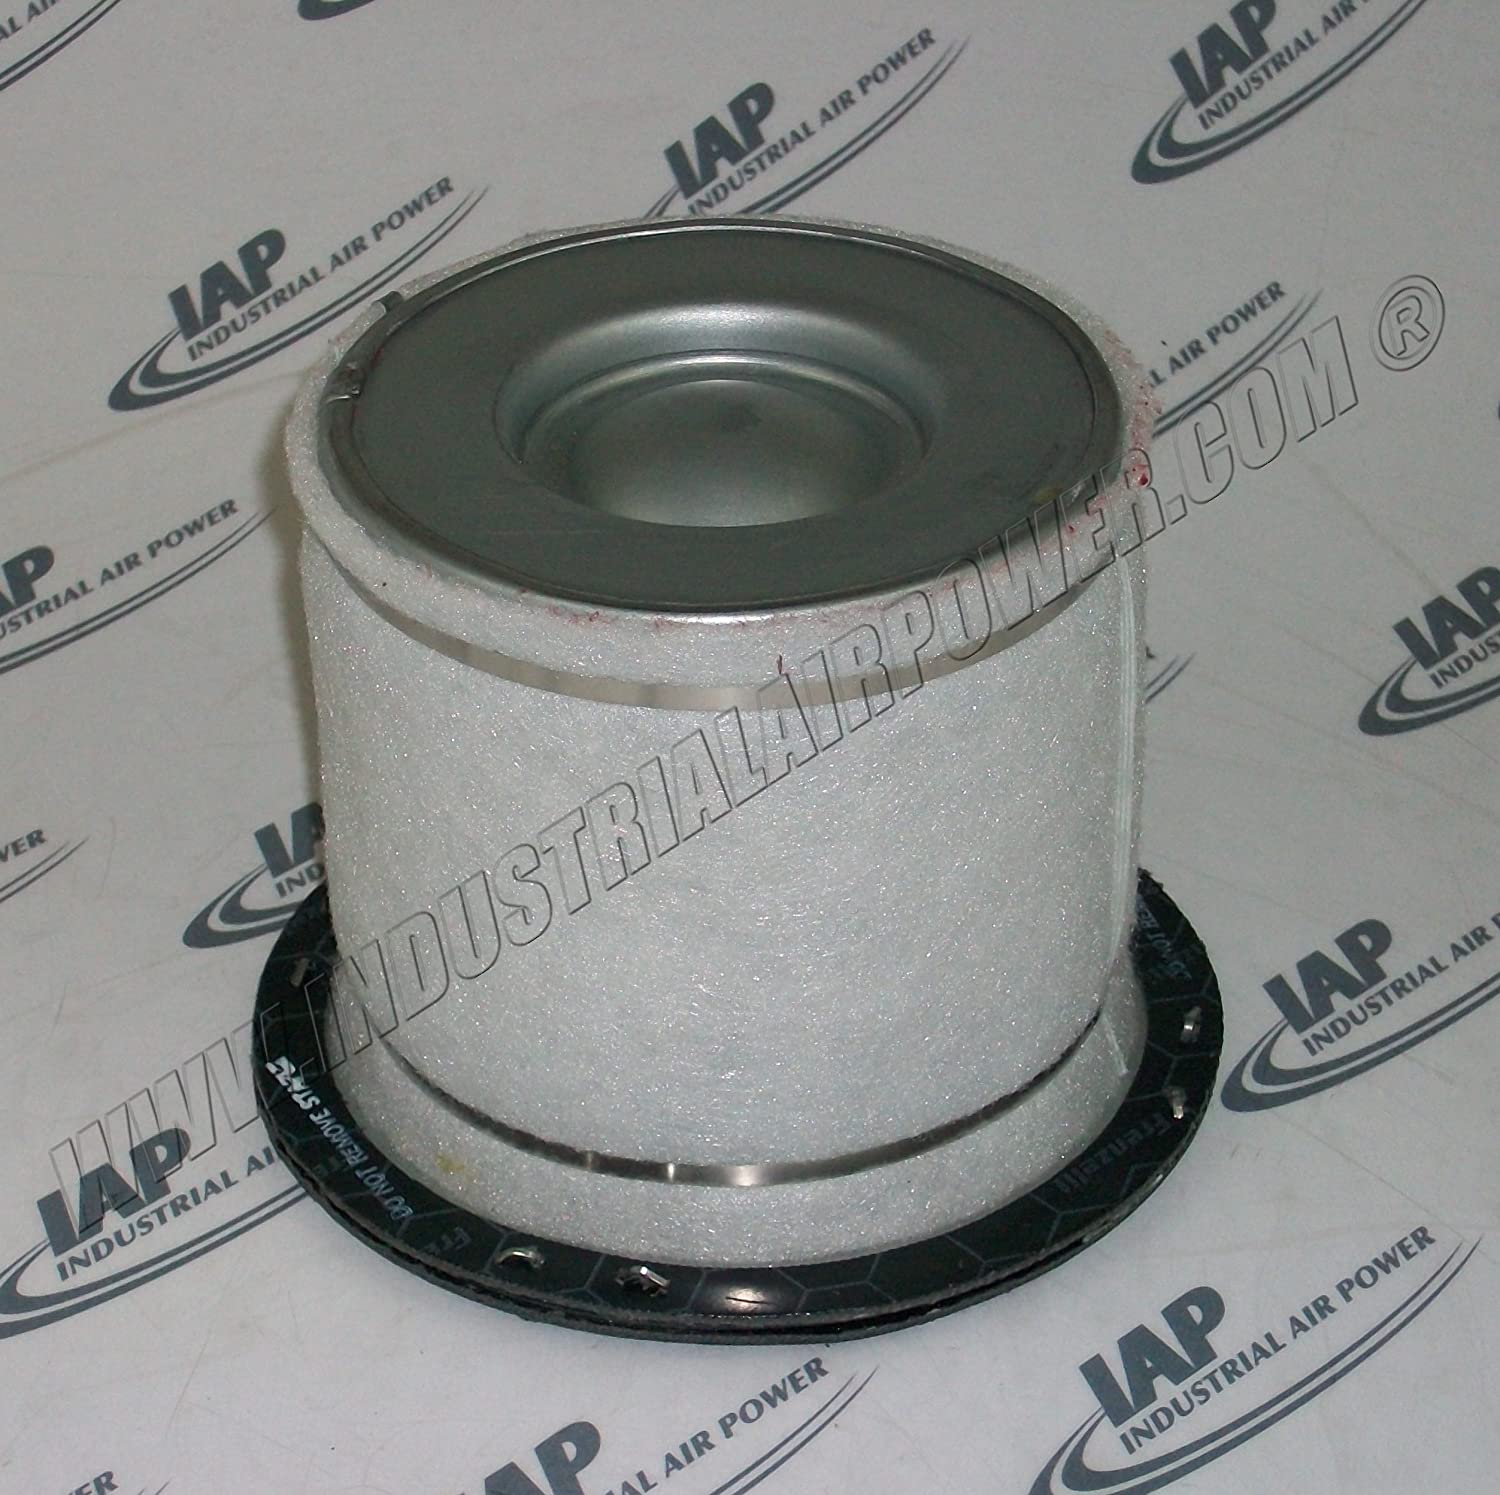 22517775 Air/Oil Separator designed for use with Ingersoll Rand Compressors Industrial Air Power